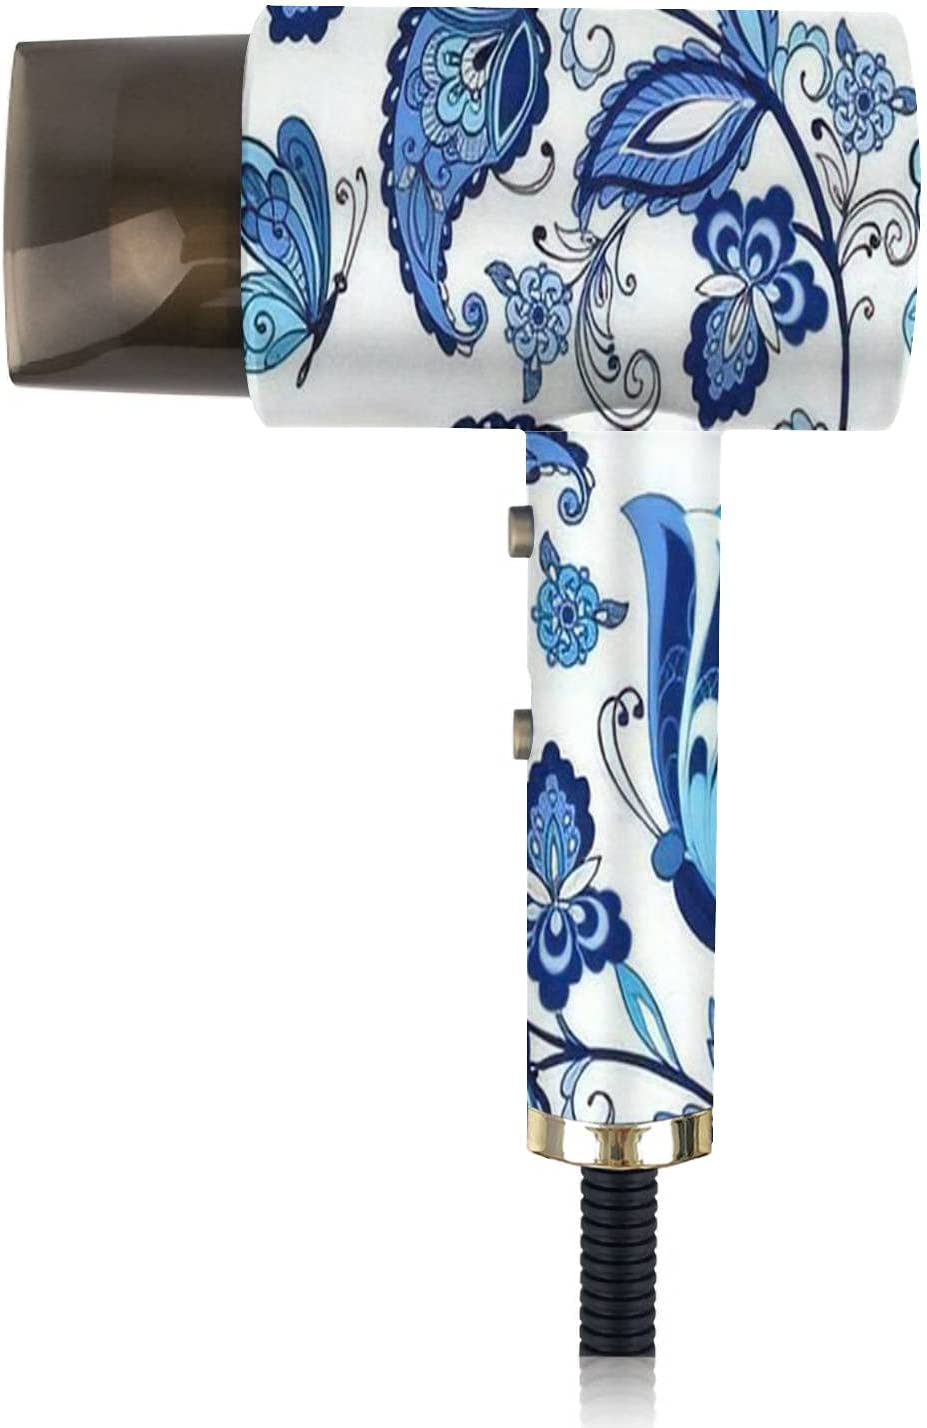 Ionic Hair Dryer Traditional Oriental V Paisley 2021new shipping Virginia Beach Mall free Seamless Pattern